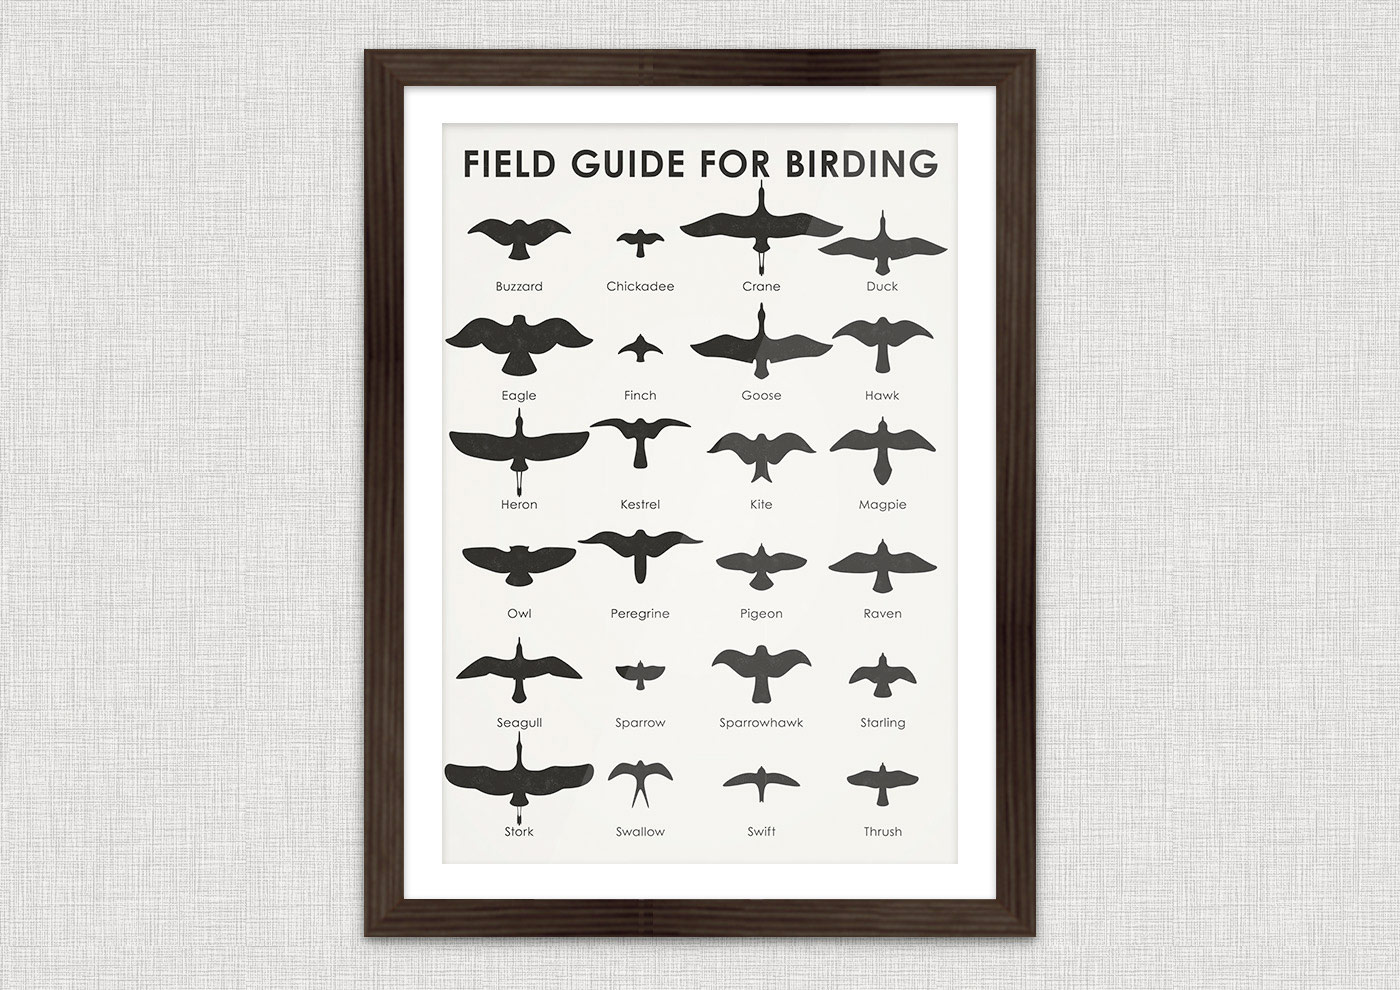 A practical sheet that helps you to easily identify 24 common bird species, such as albatros, buzzard, chickadee, crane, duck, eagle, finch, goose, hawk, heron, kestrel, kite, magpie, peregrine, pigeon, raven, seagull, sparrow, sparrowhawk, starling, stork, swallow, swift or thrush, by their silhouette in the air.